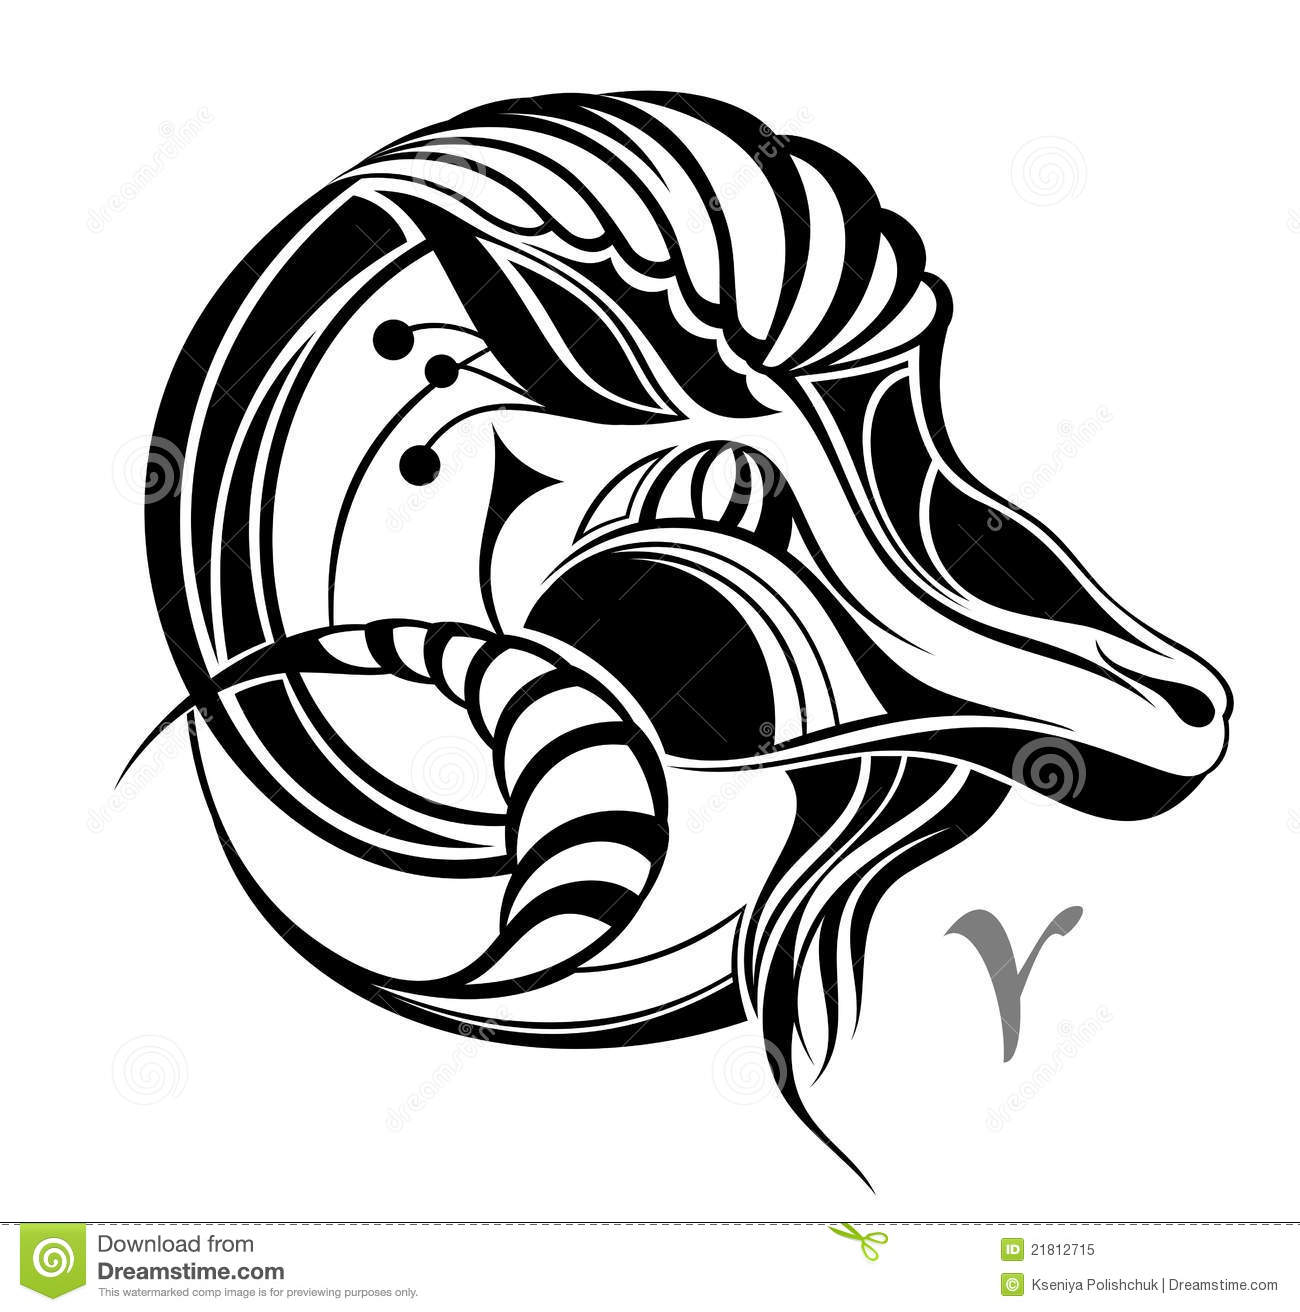 Aries Zodiac Vector Sign. Tattoo Design Stock Vector ... Aquarius Tattoos For Guys